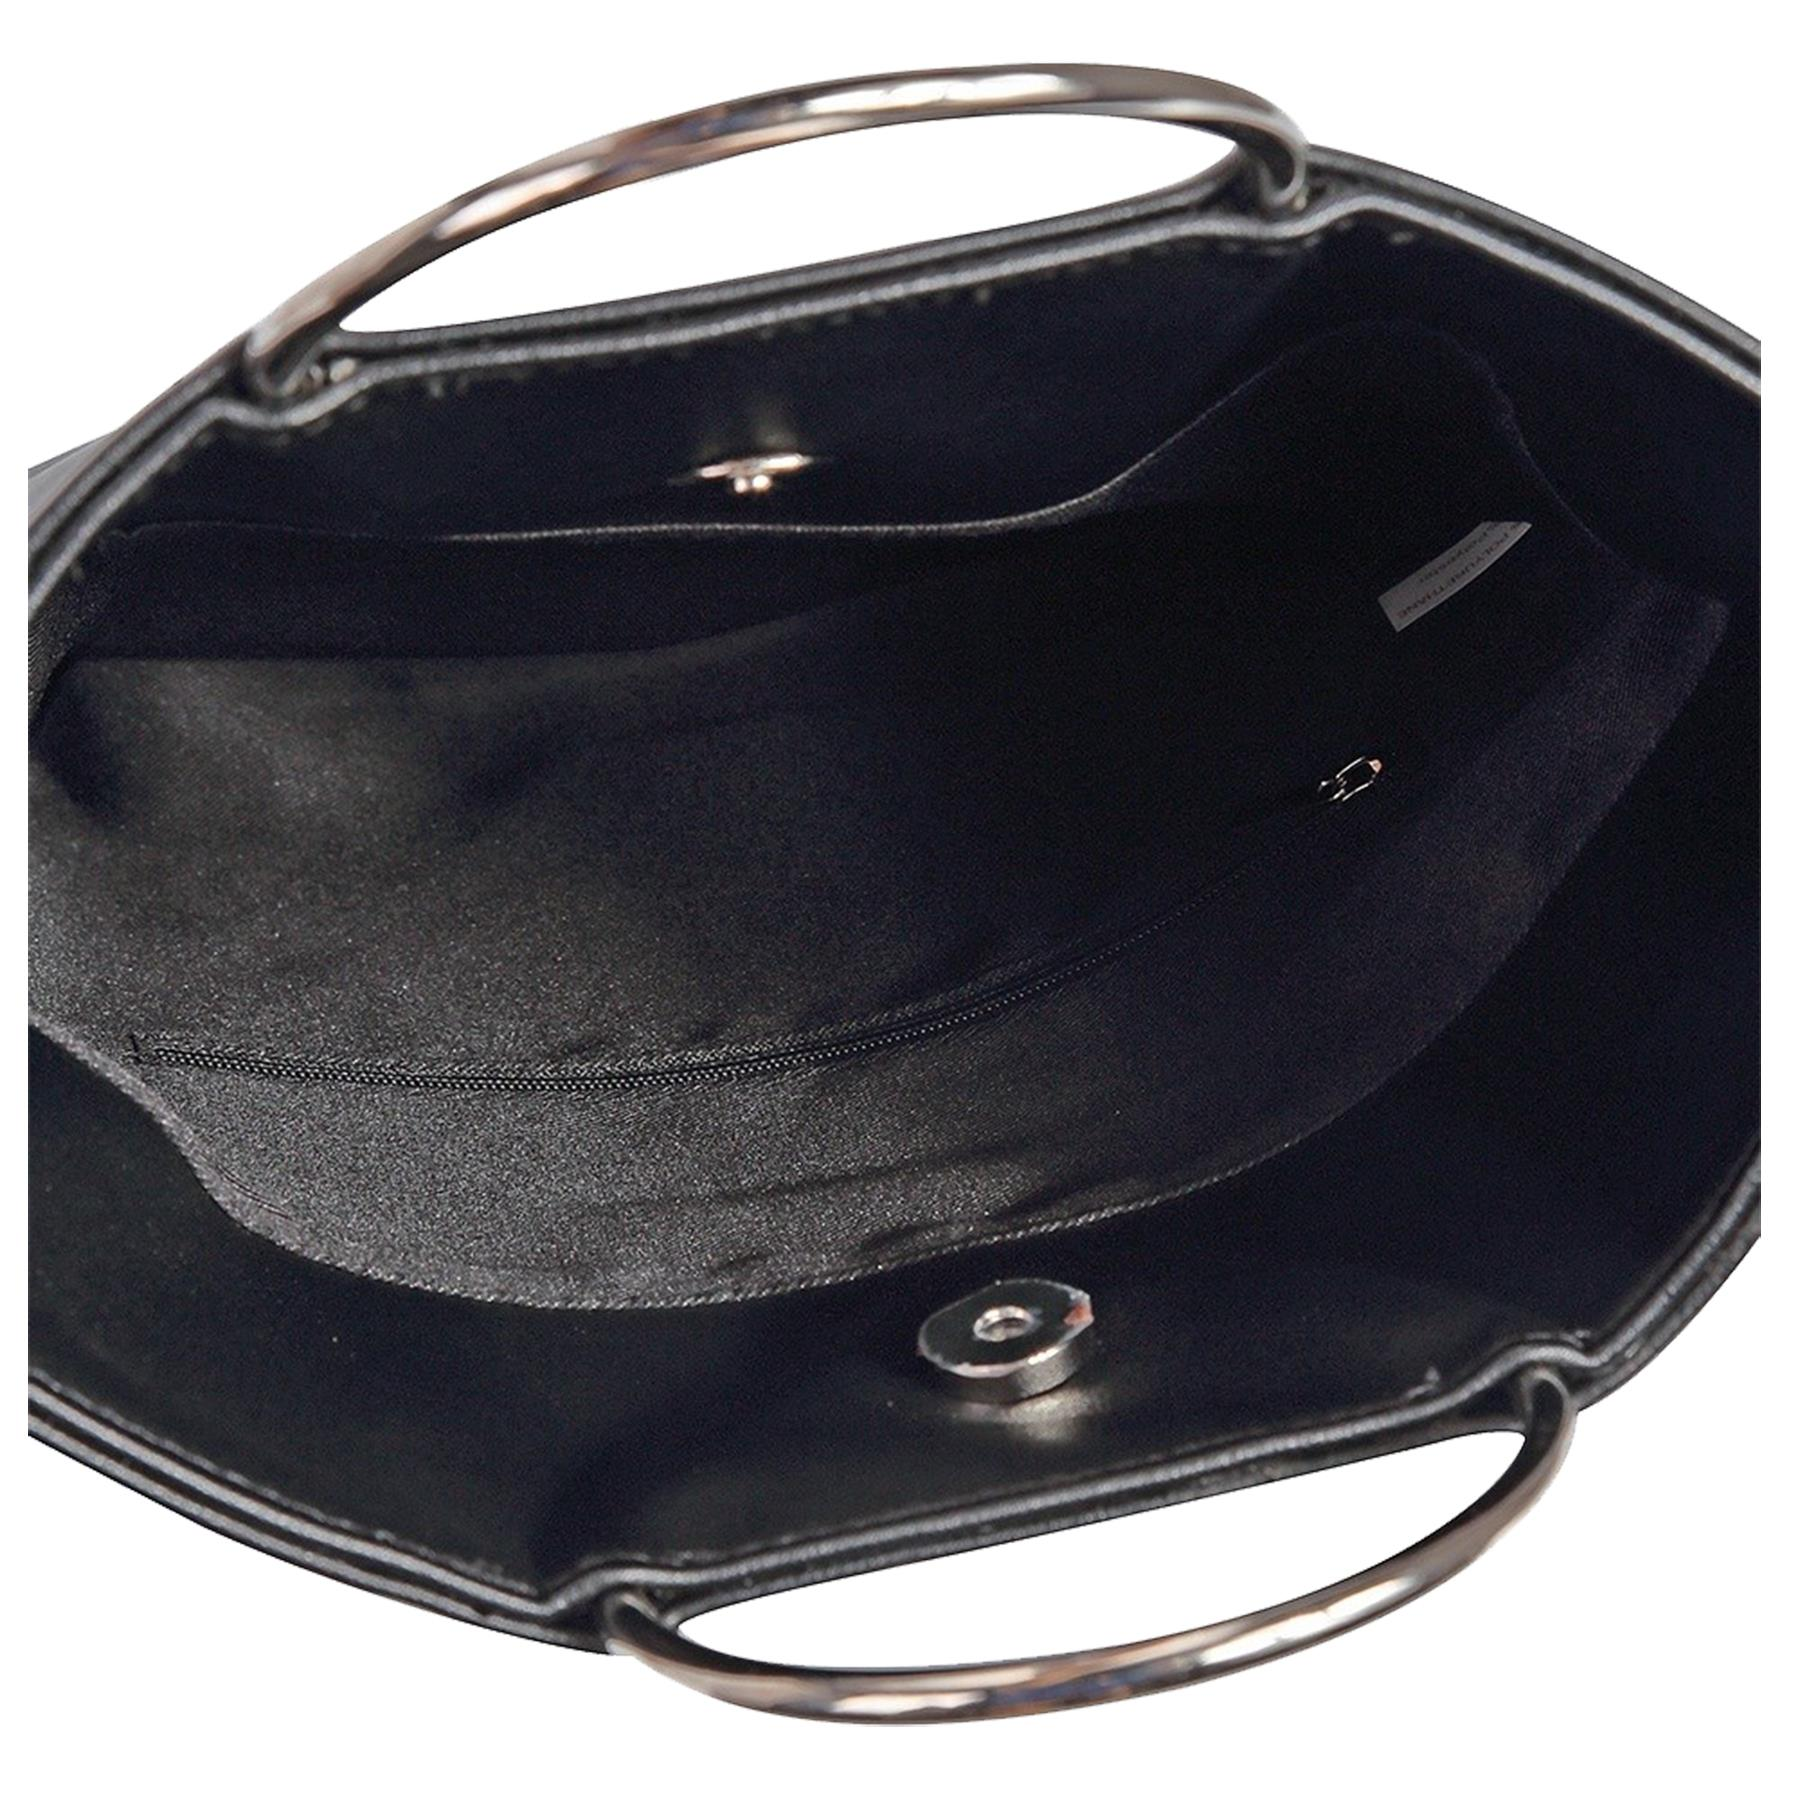 New-Women-s-Metallic-Ring-Top-Handles-Faux-Leather-Evening-Clutch-Bag thumbnail 4